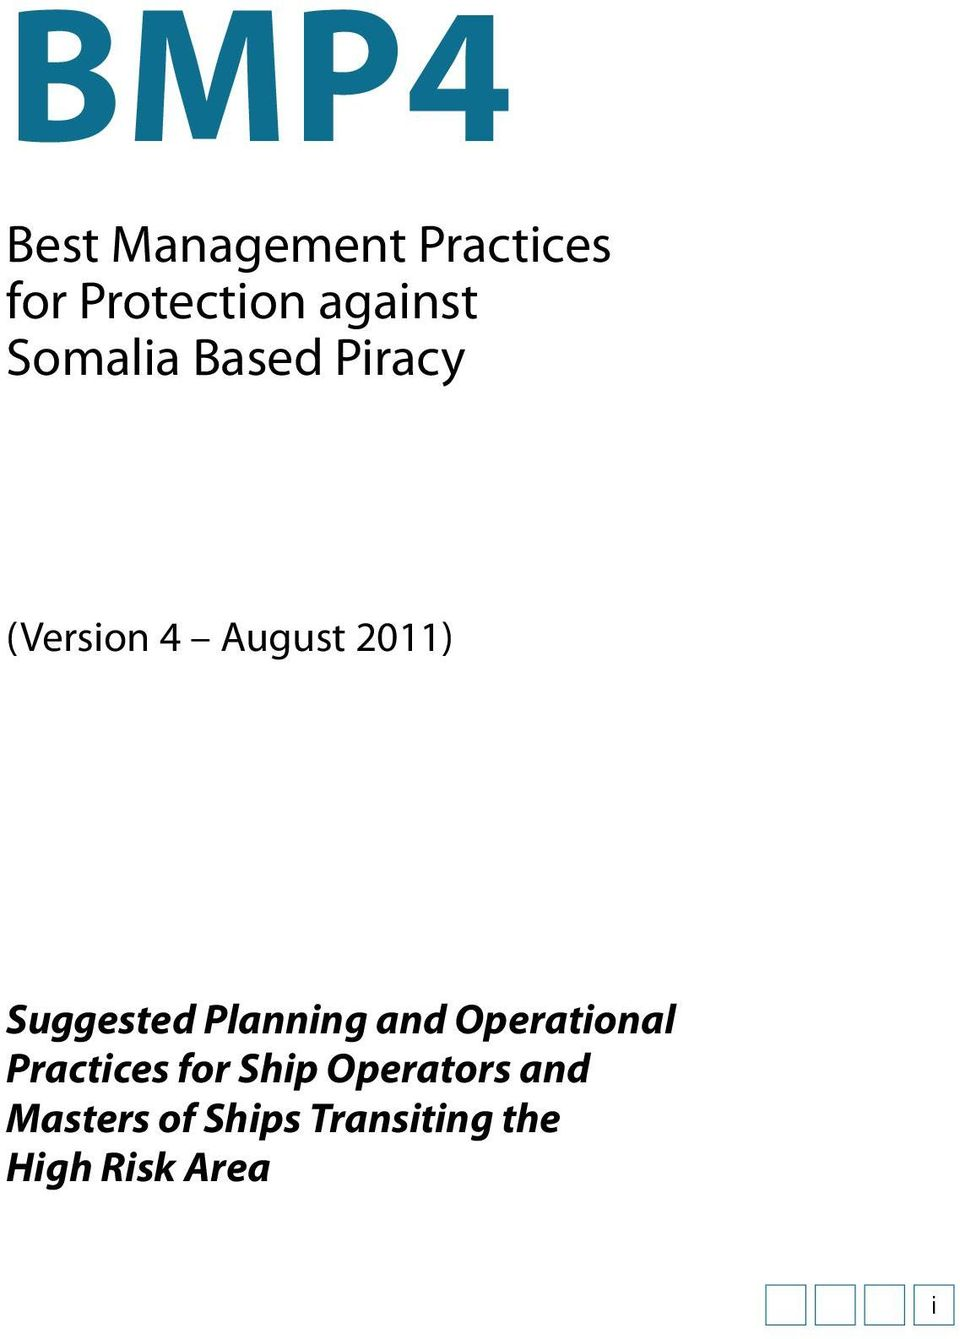 Suggested Planning and Operational Practices for Ship